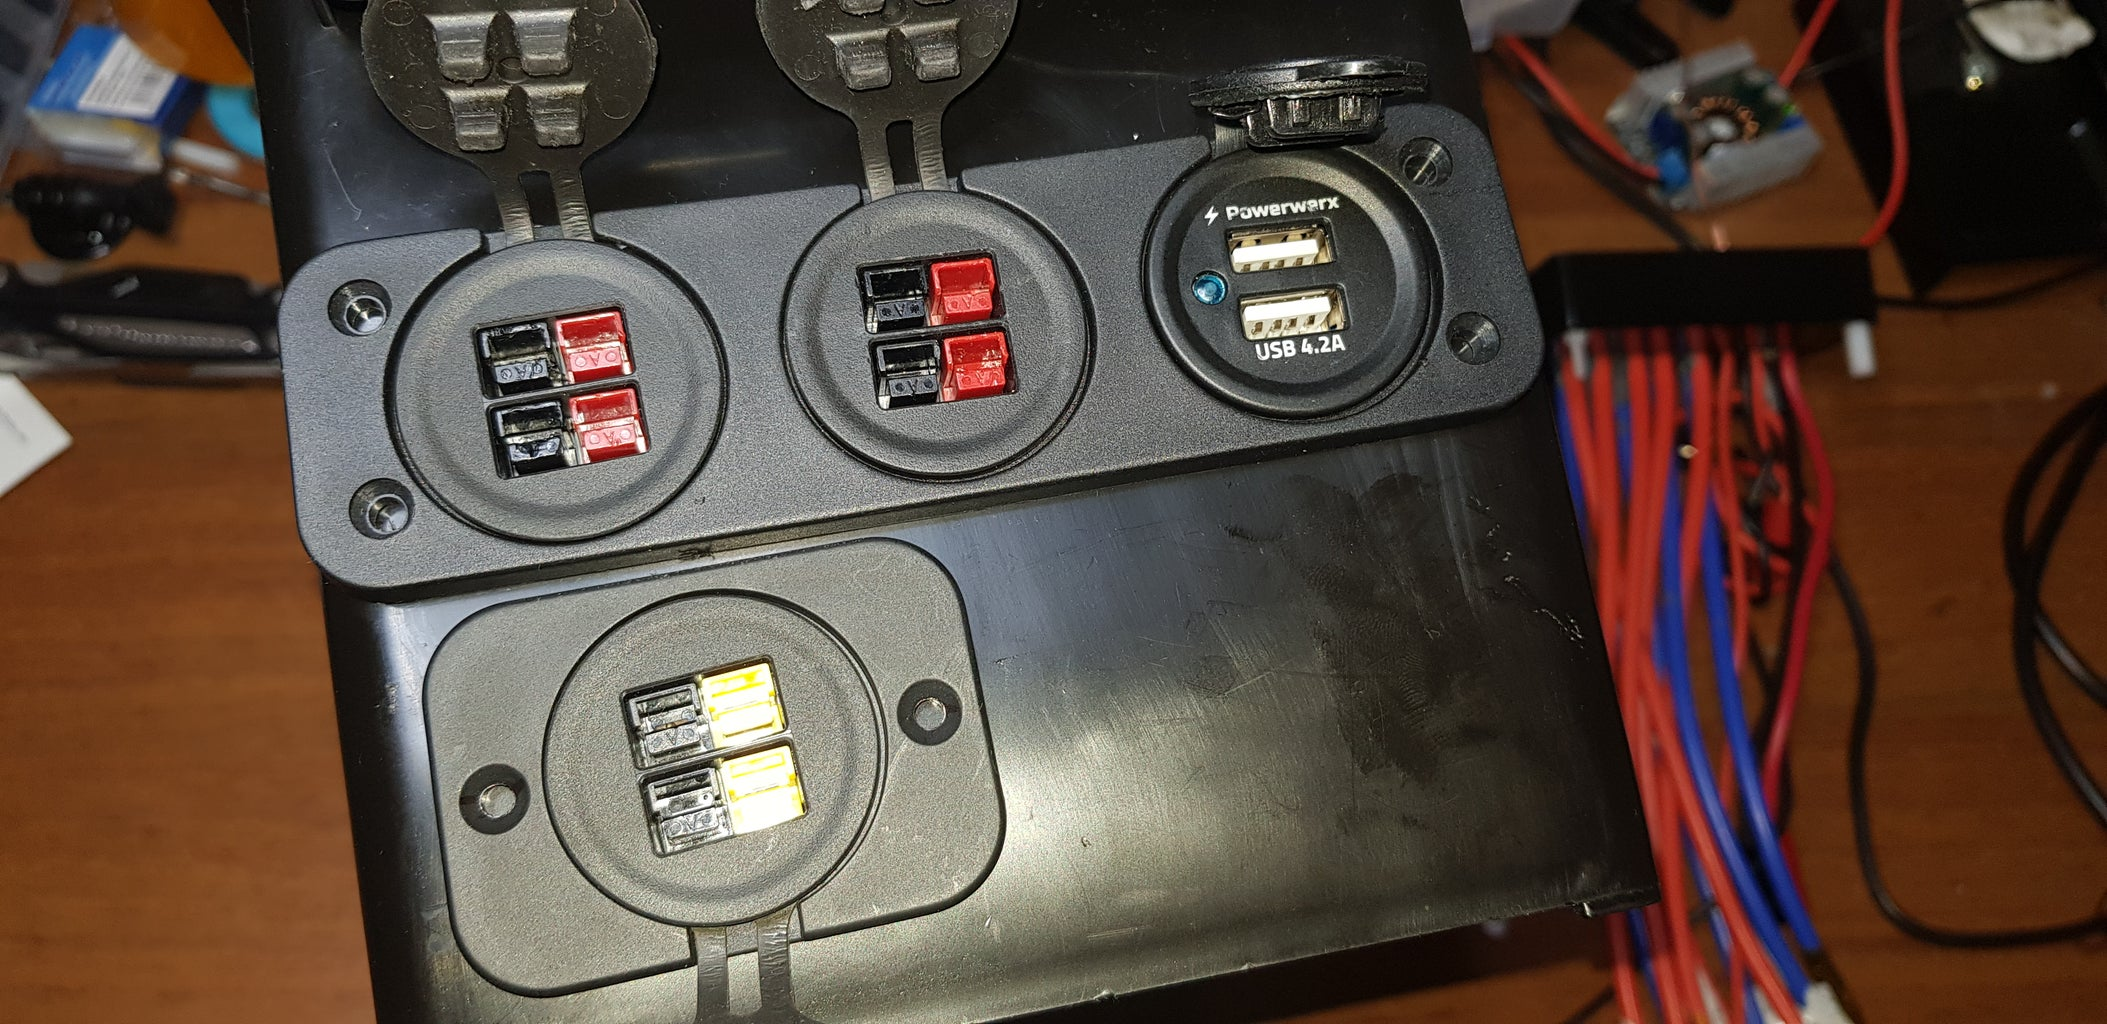 Wire the Fuse Box, 12 Volt and Usb Outputs